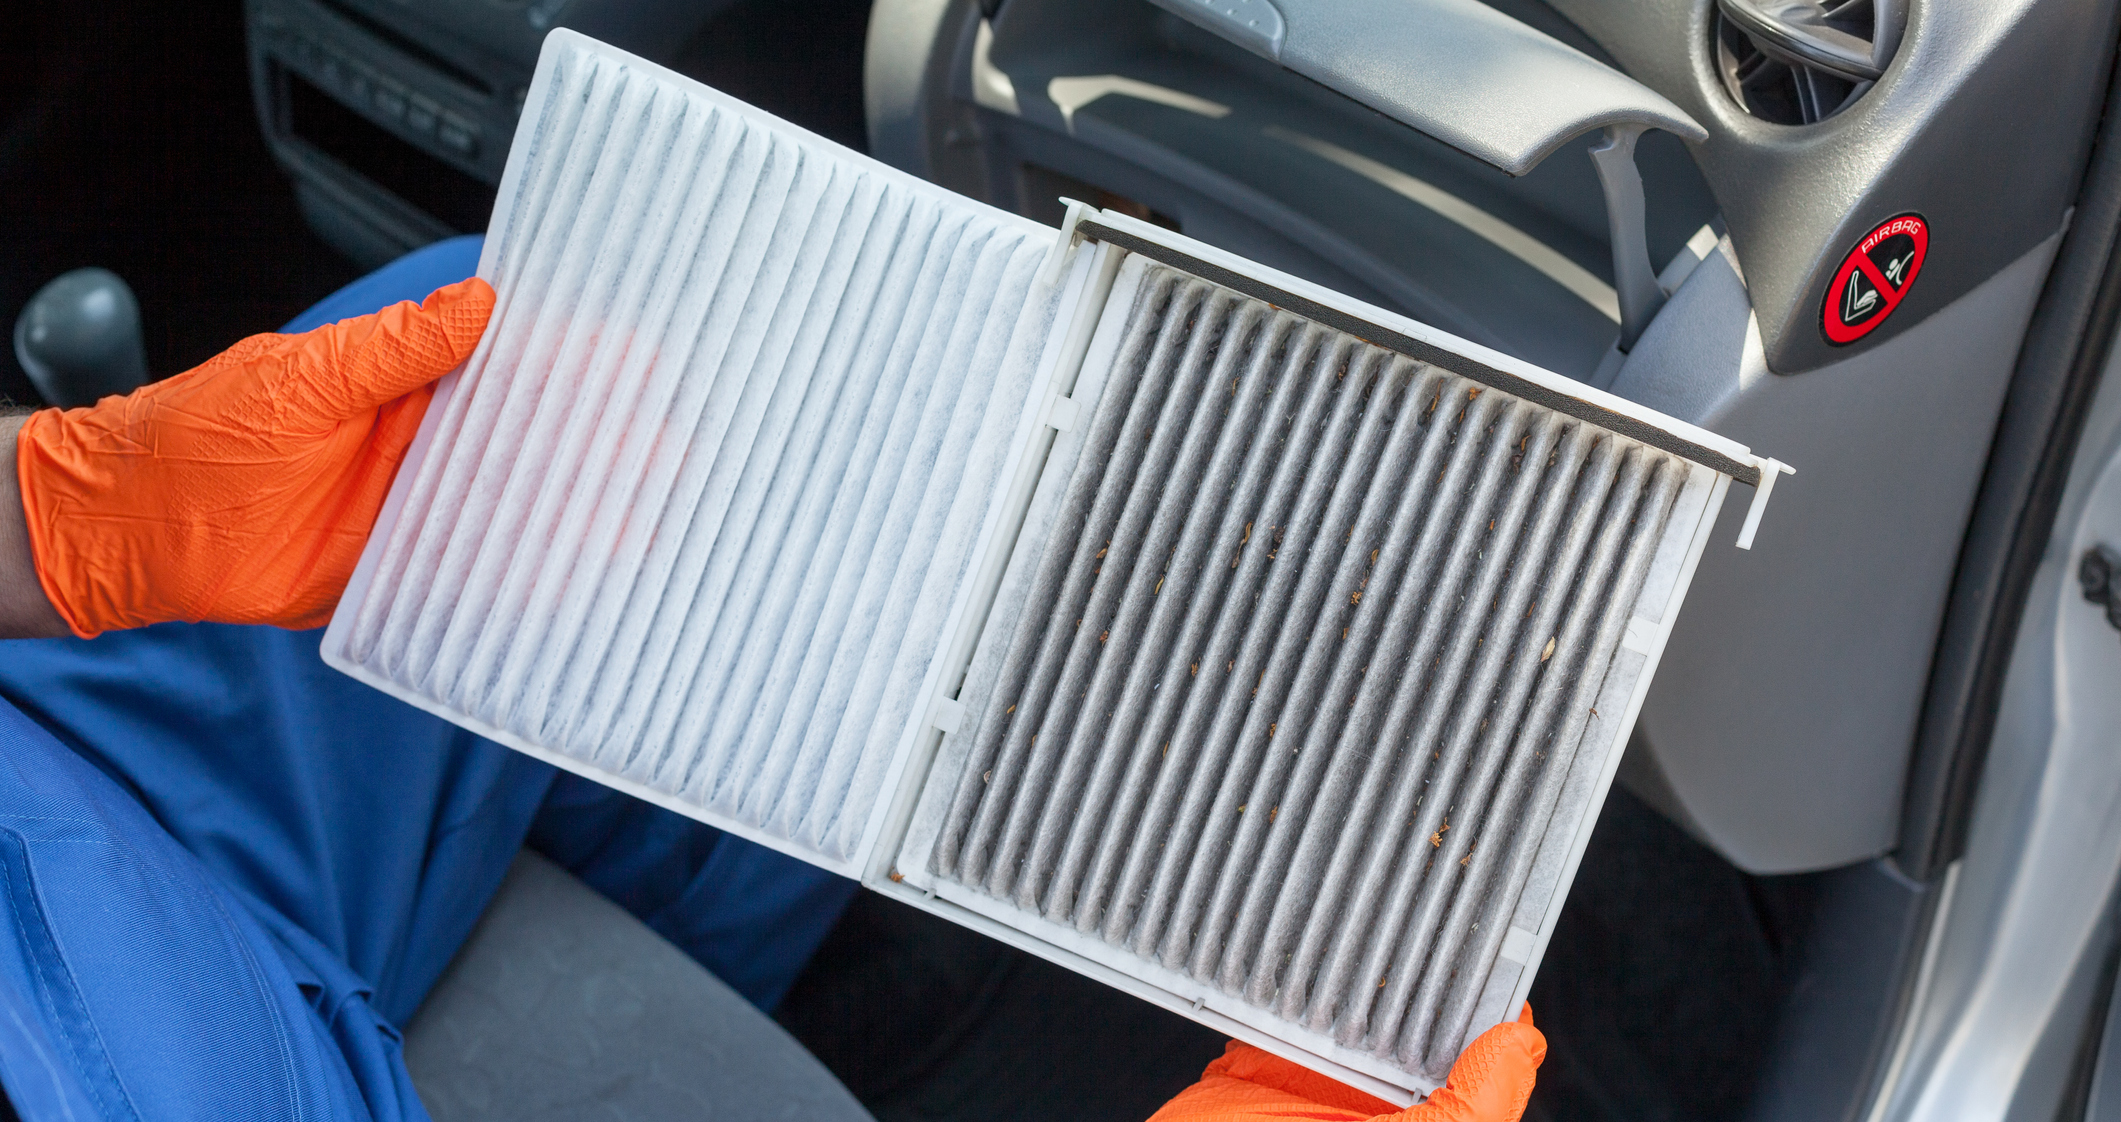 Cabin Air Filter Replacement Service in Elgin, IL